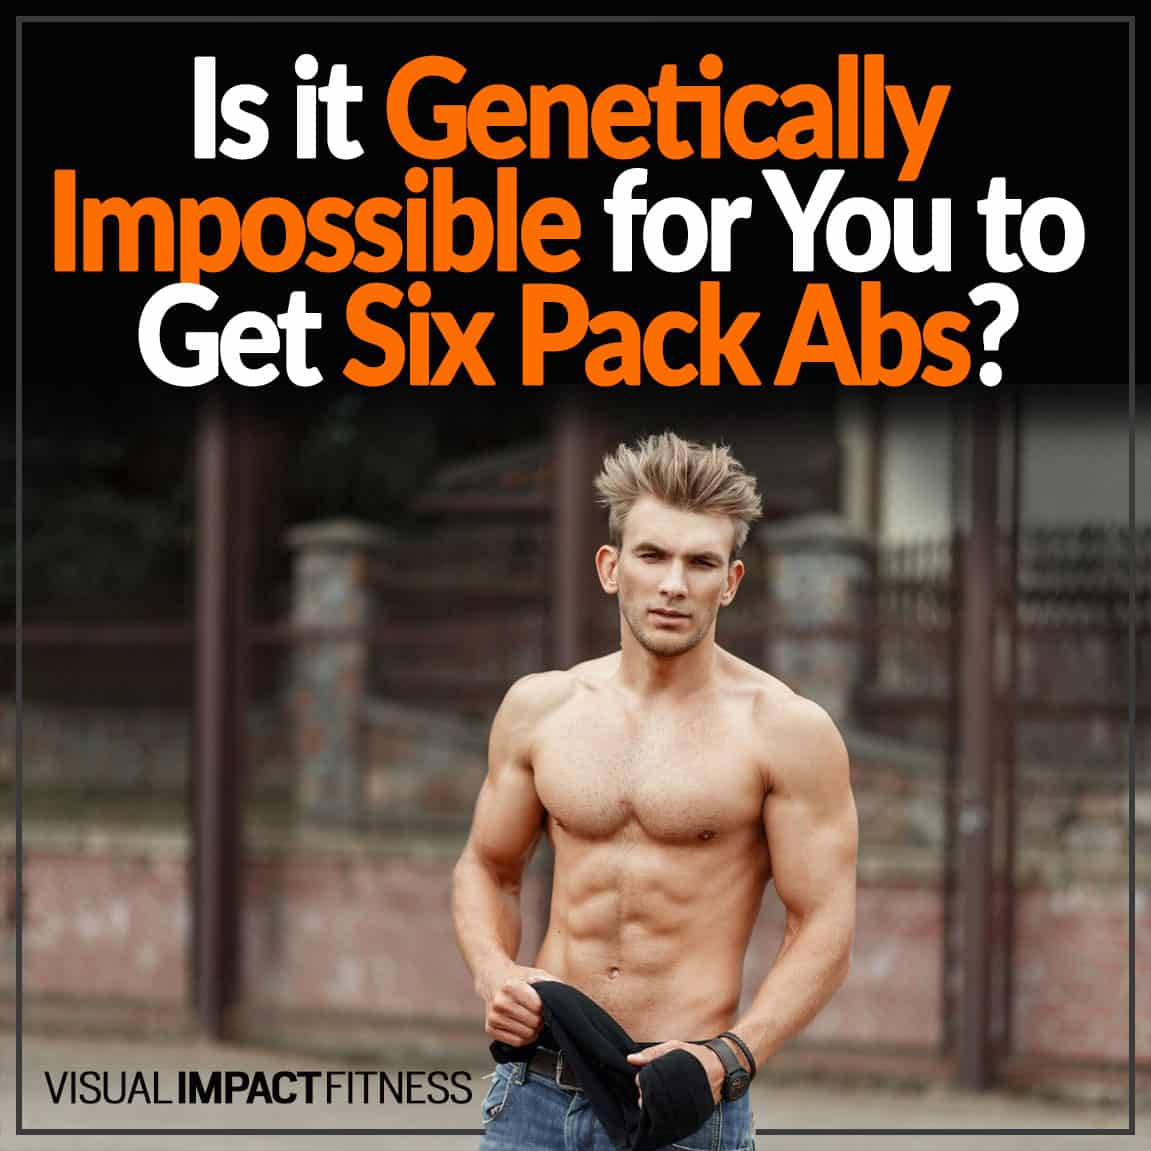 Is it Genetically Impossible for You to Get Six Pack Abs?